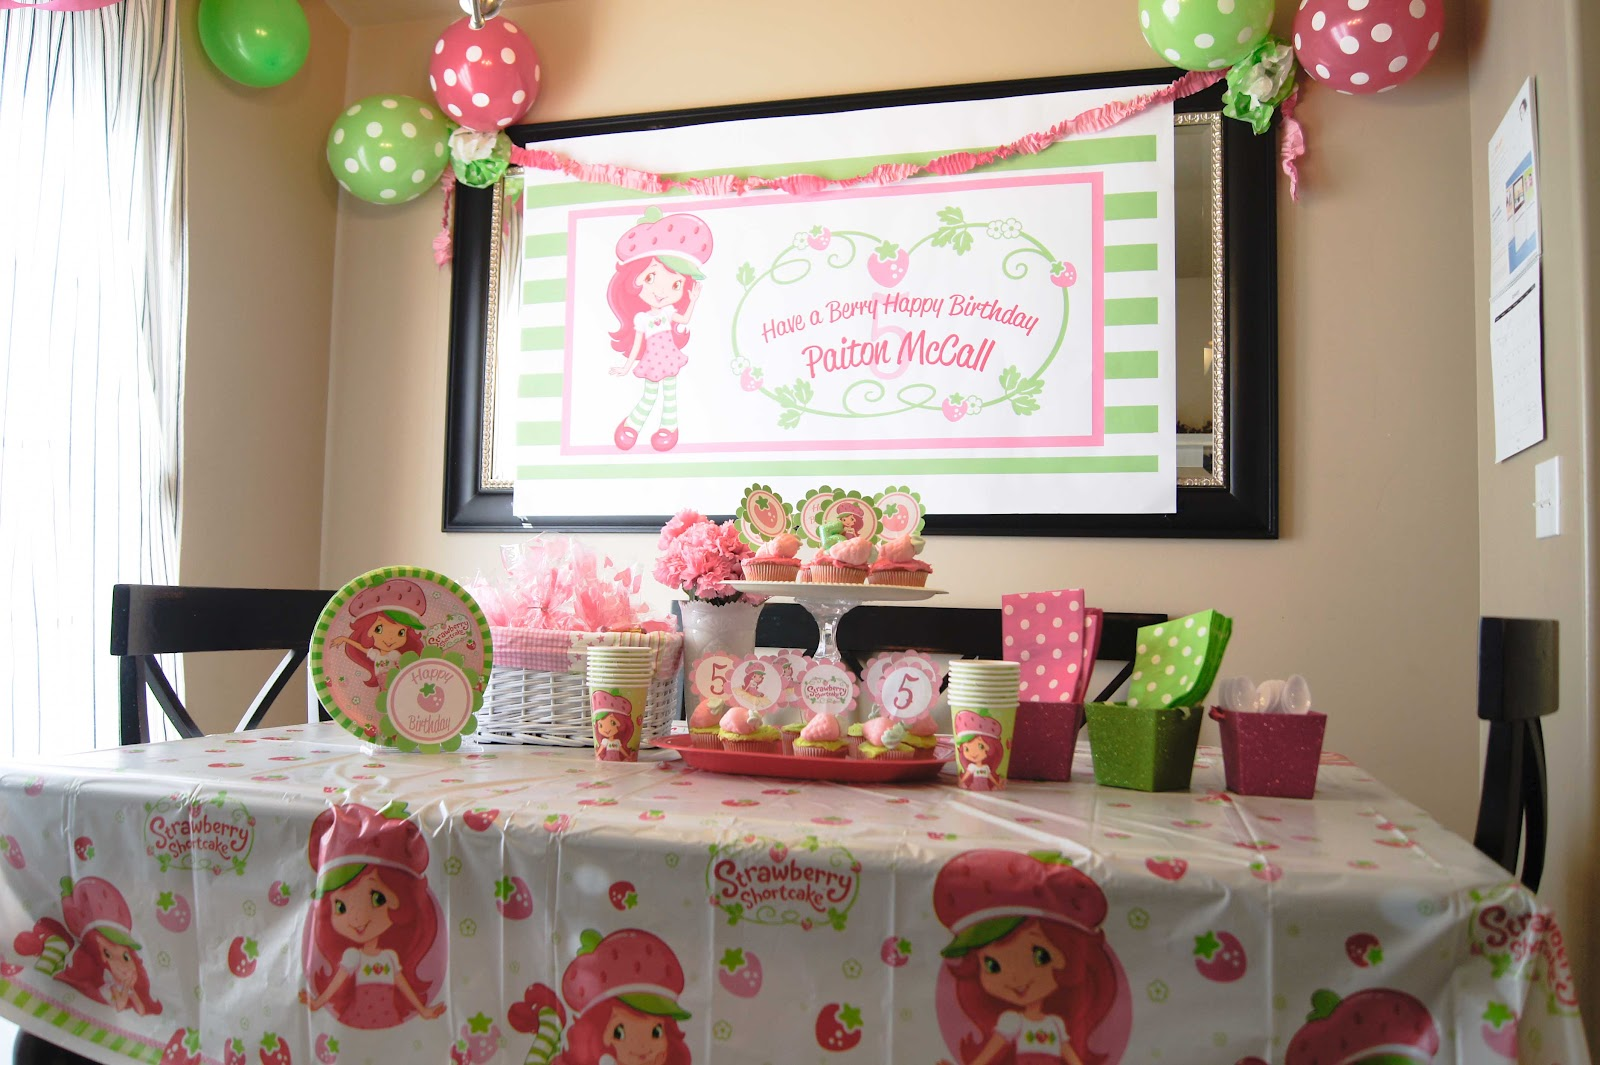 sister the secret to a simple strawberry shortcake birthday party